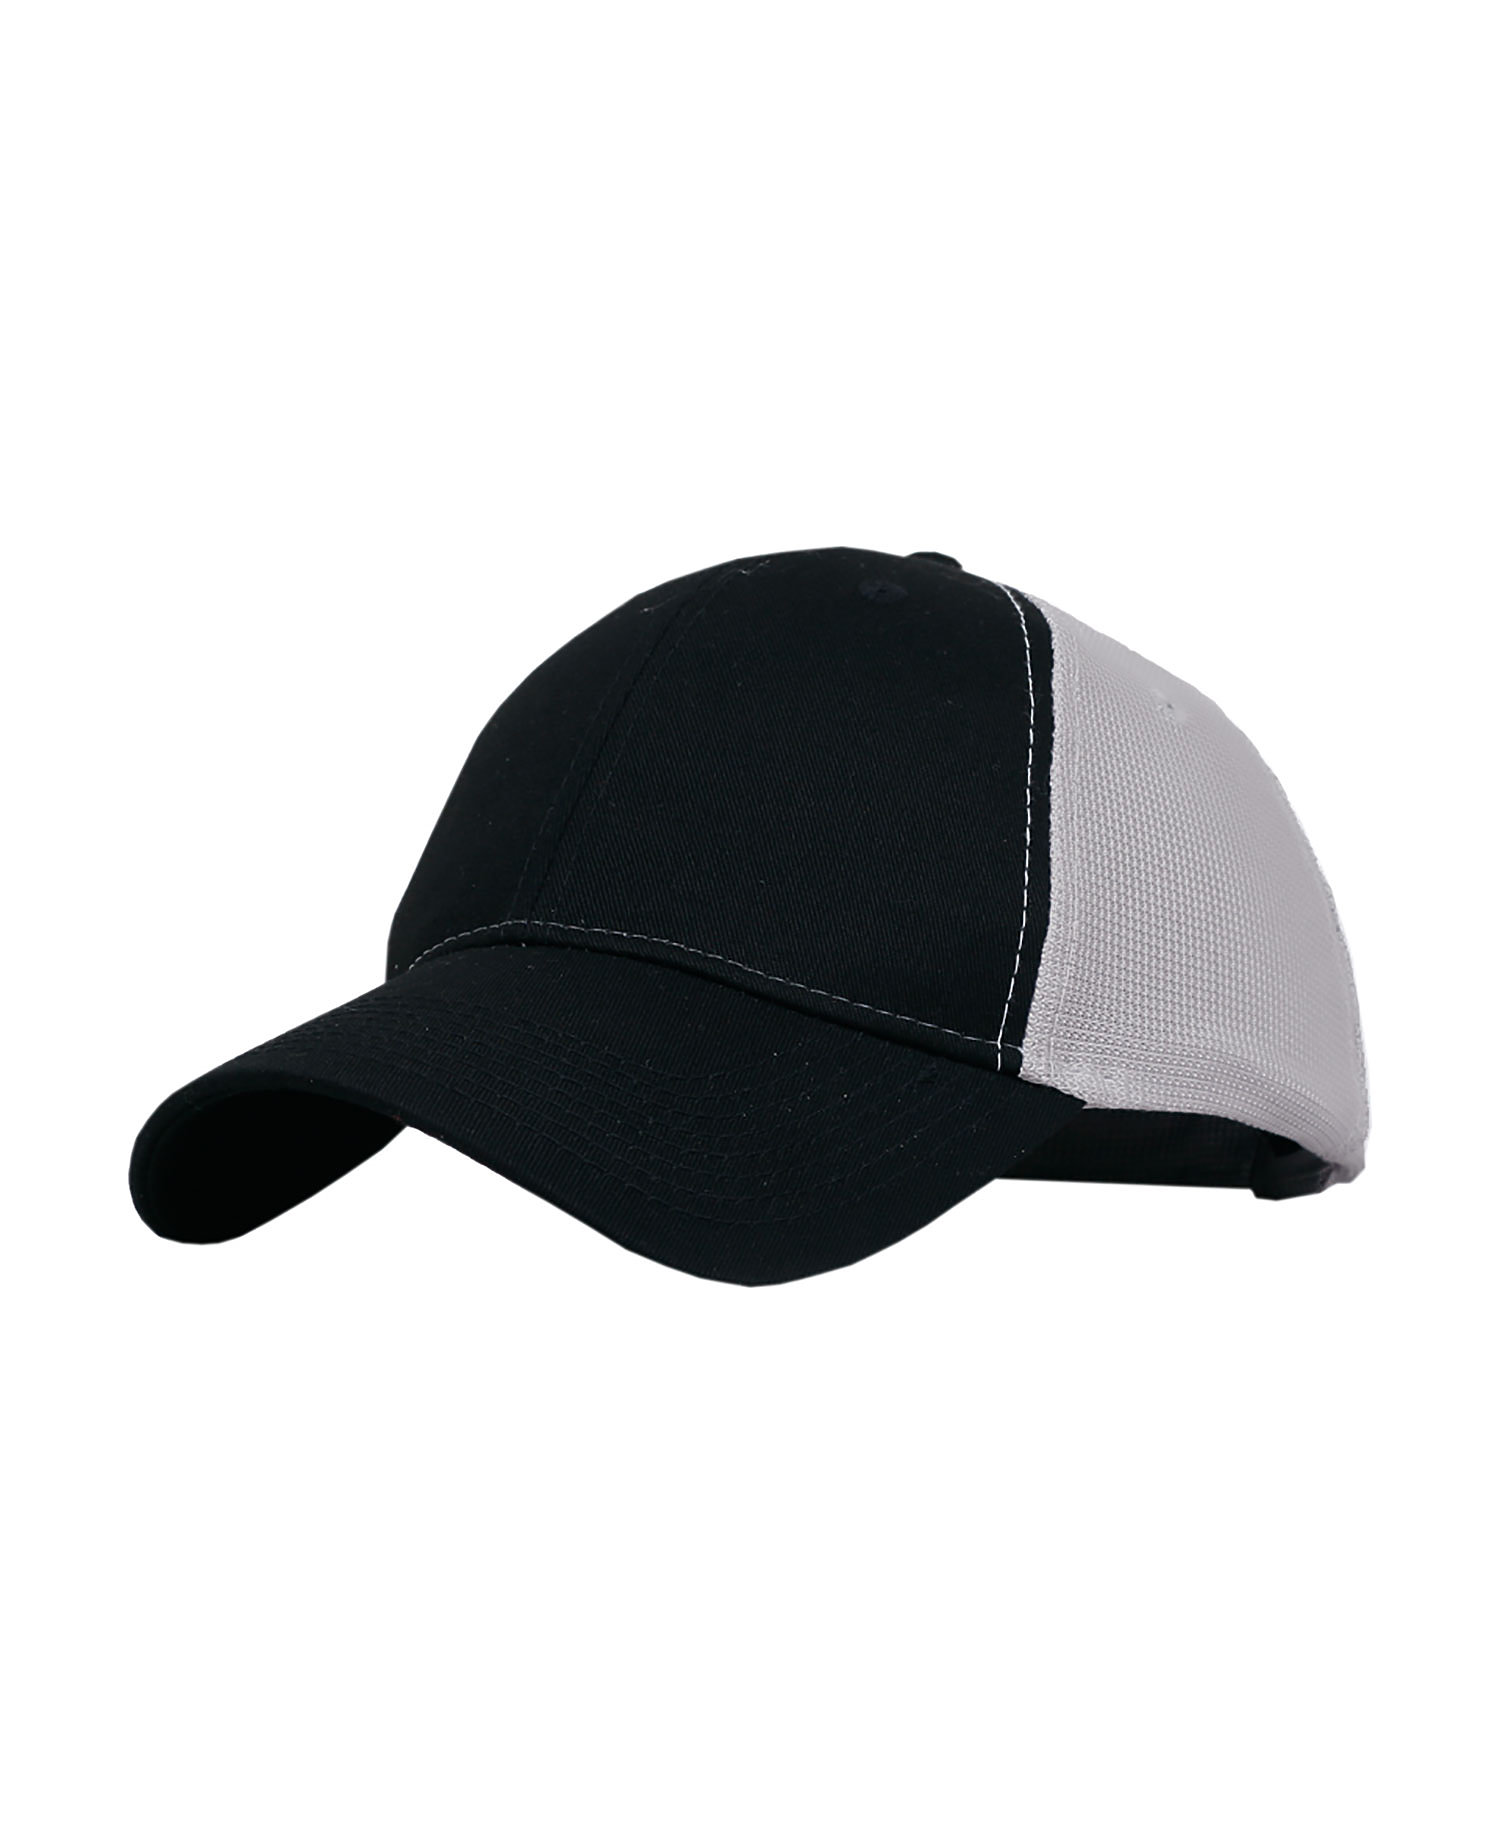 Fahrenheit F0735 - Cotton Twill with High Tech Mesh Cap